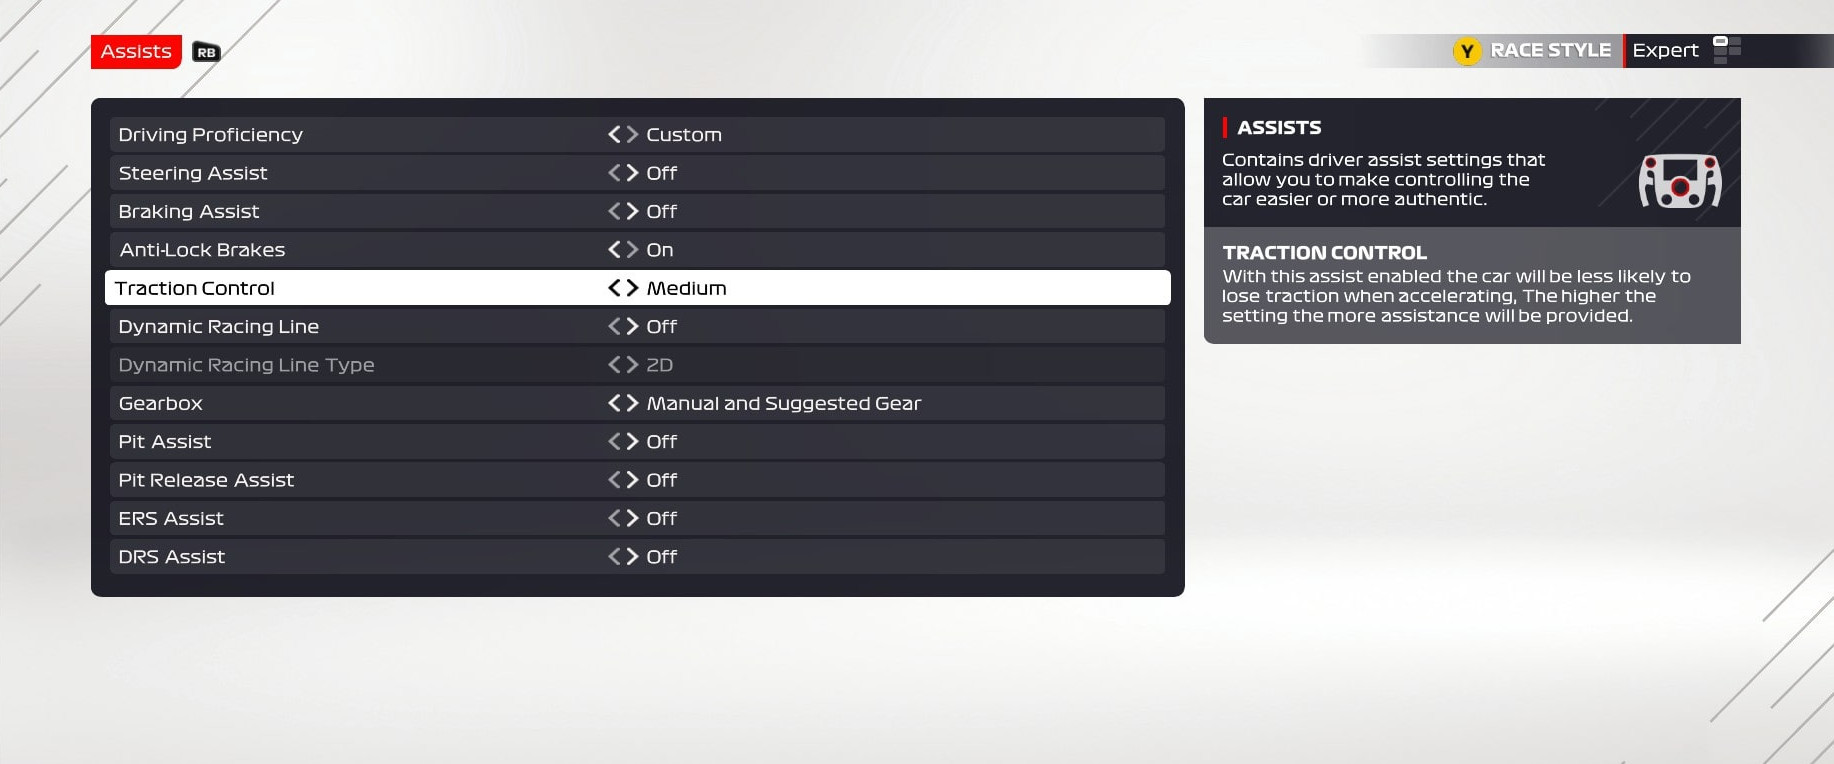 An image of the assists menu in F1 2021, with the traction control set to medium and the ABS set to on.